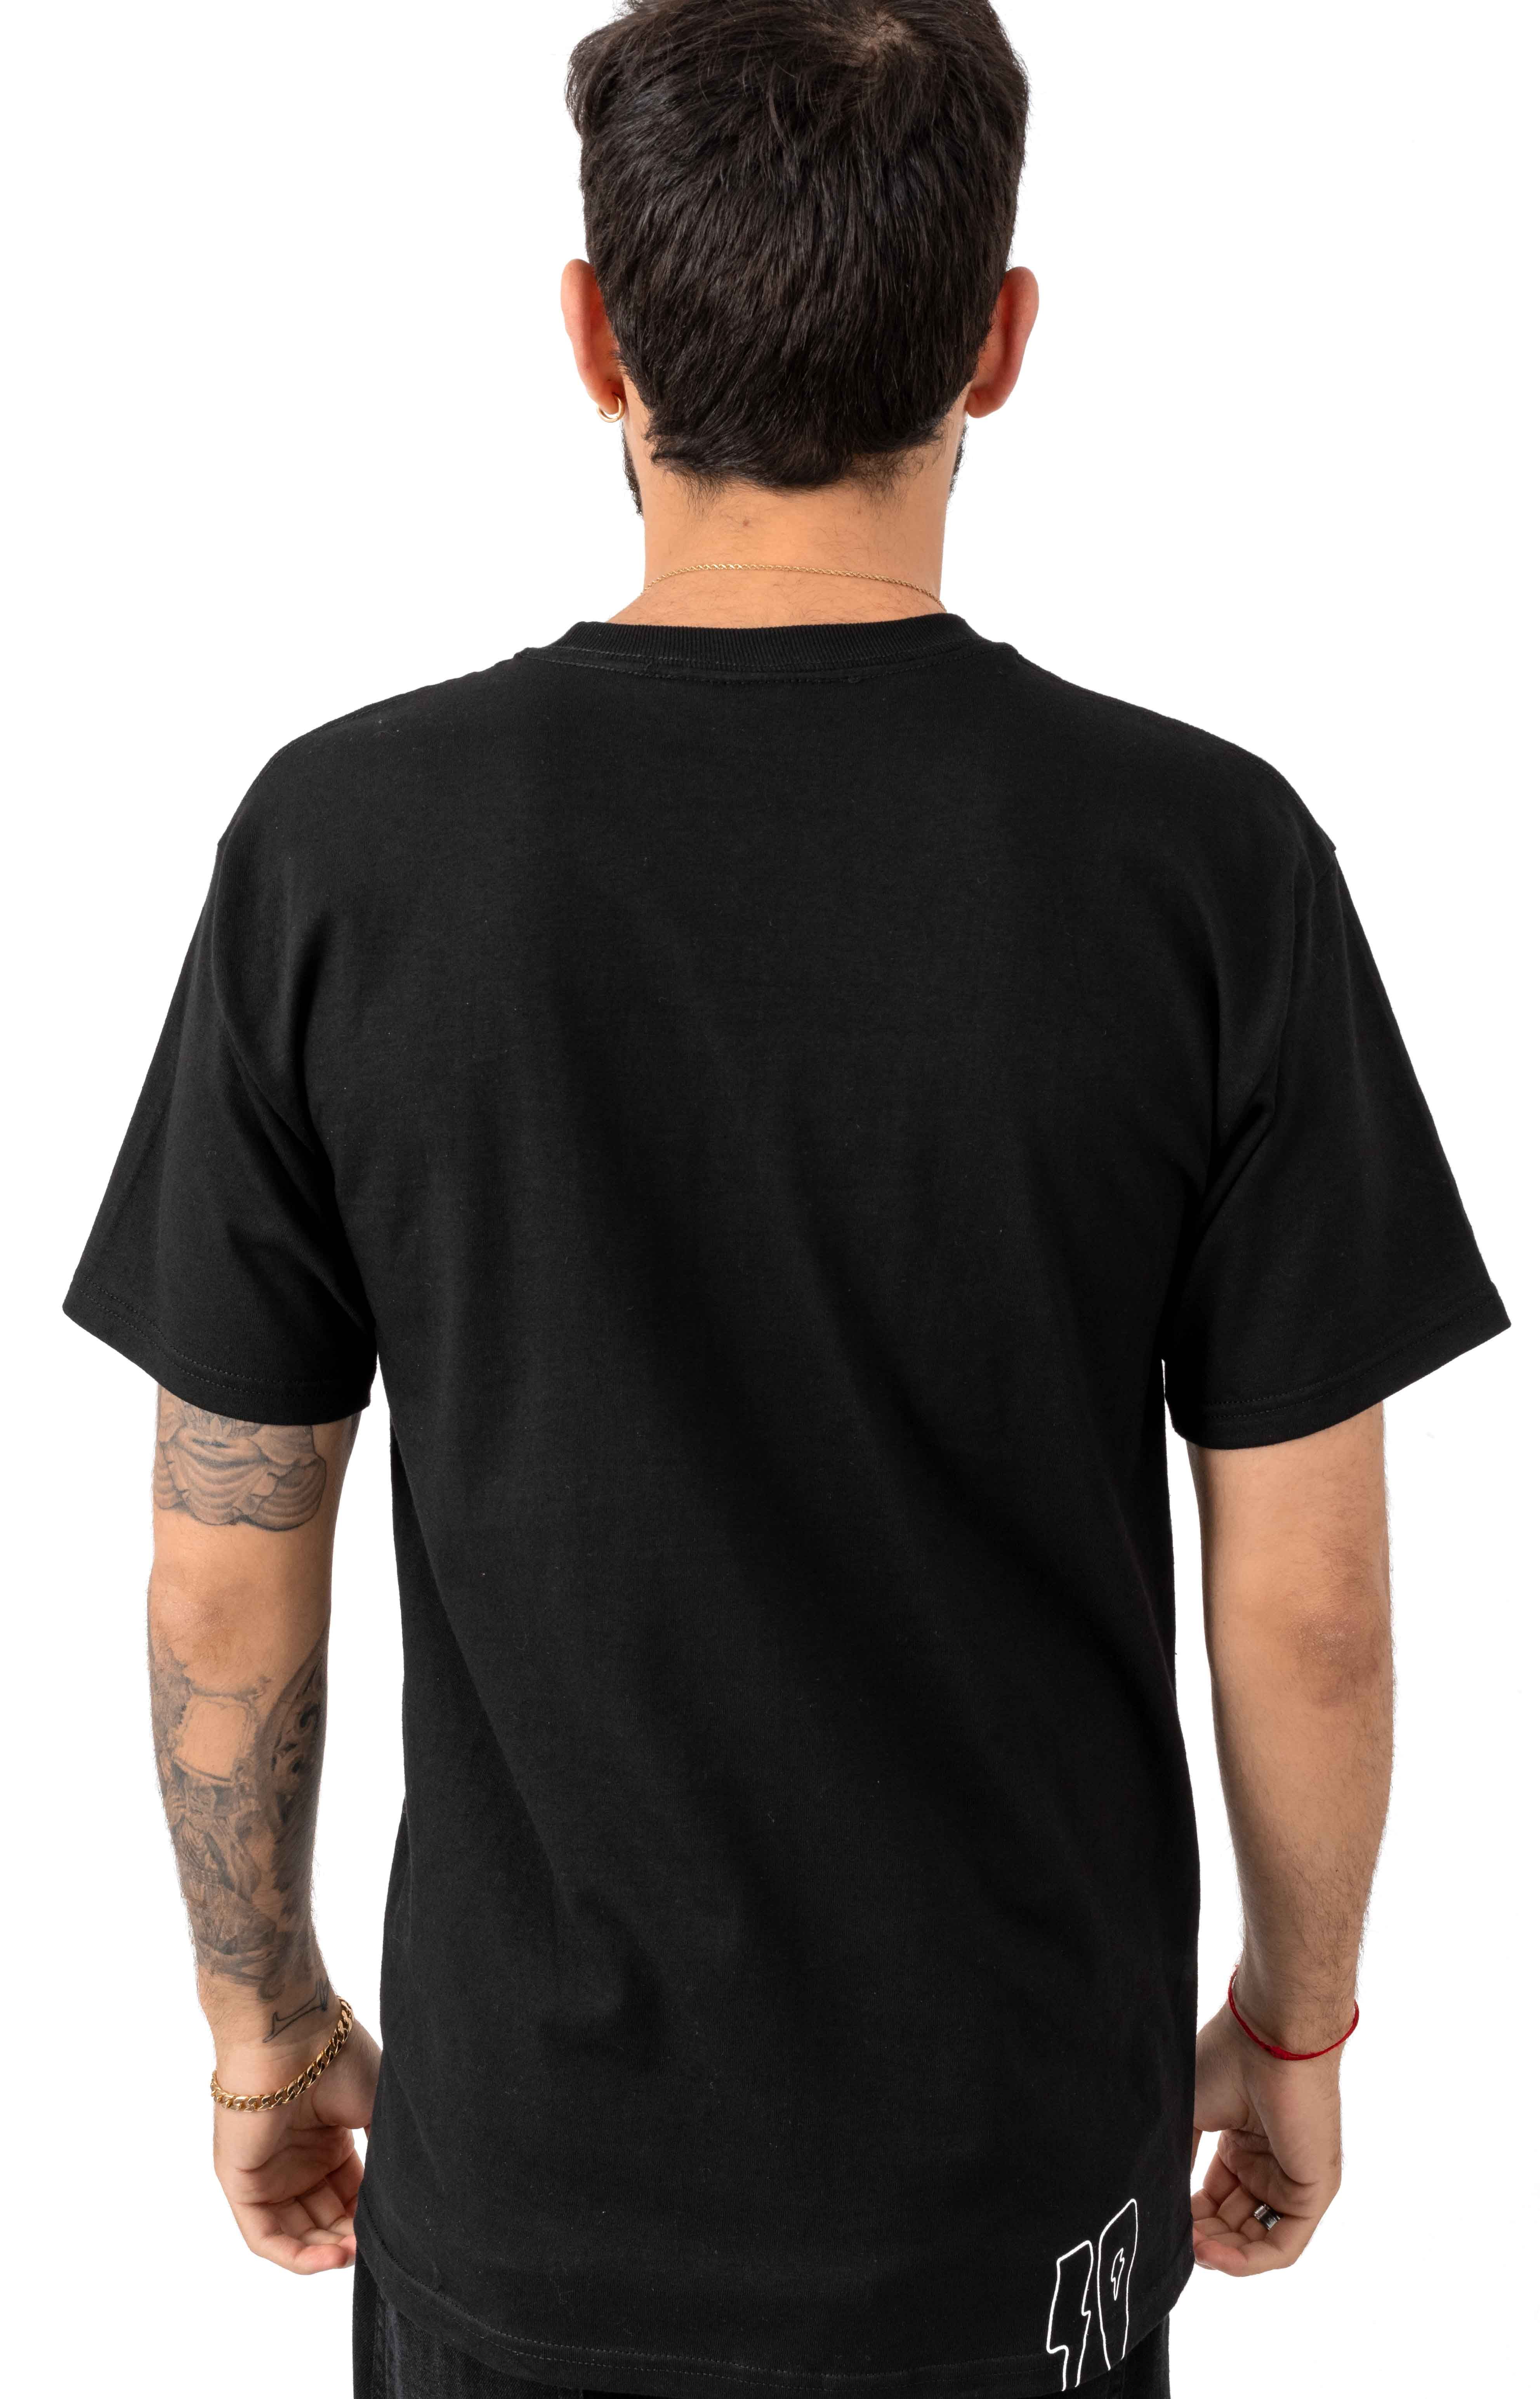 Nuclear Family T-Shirt - Black 3